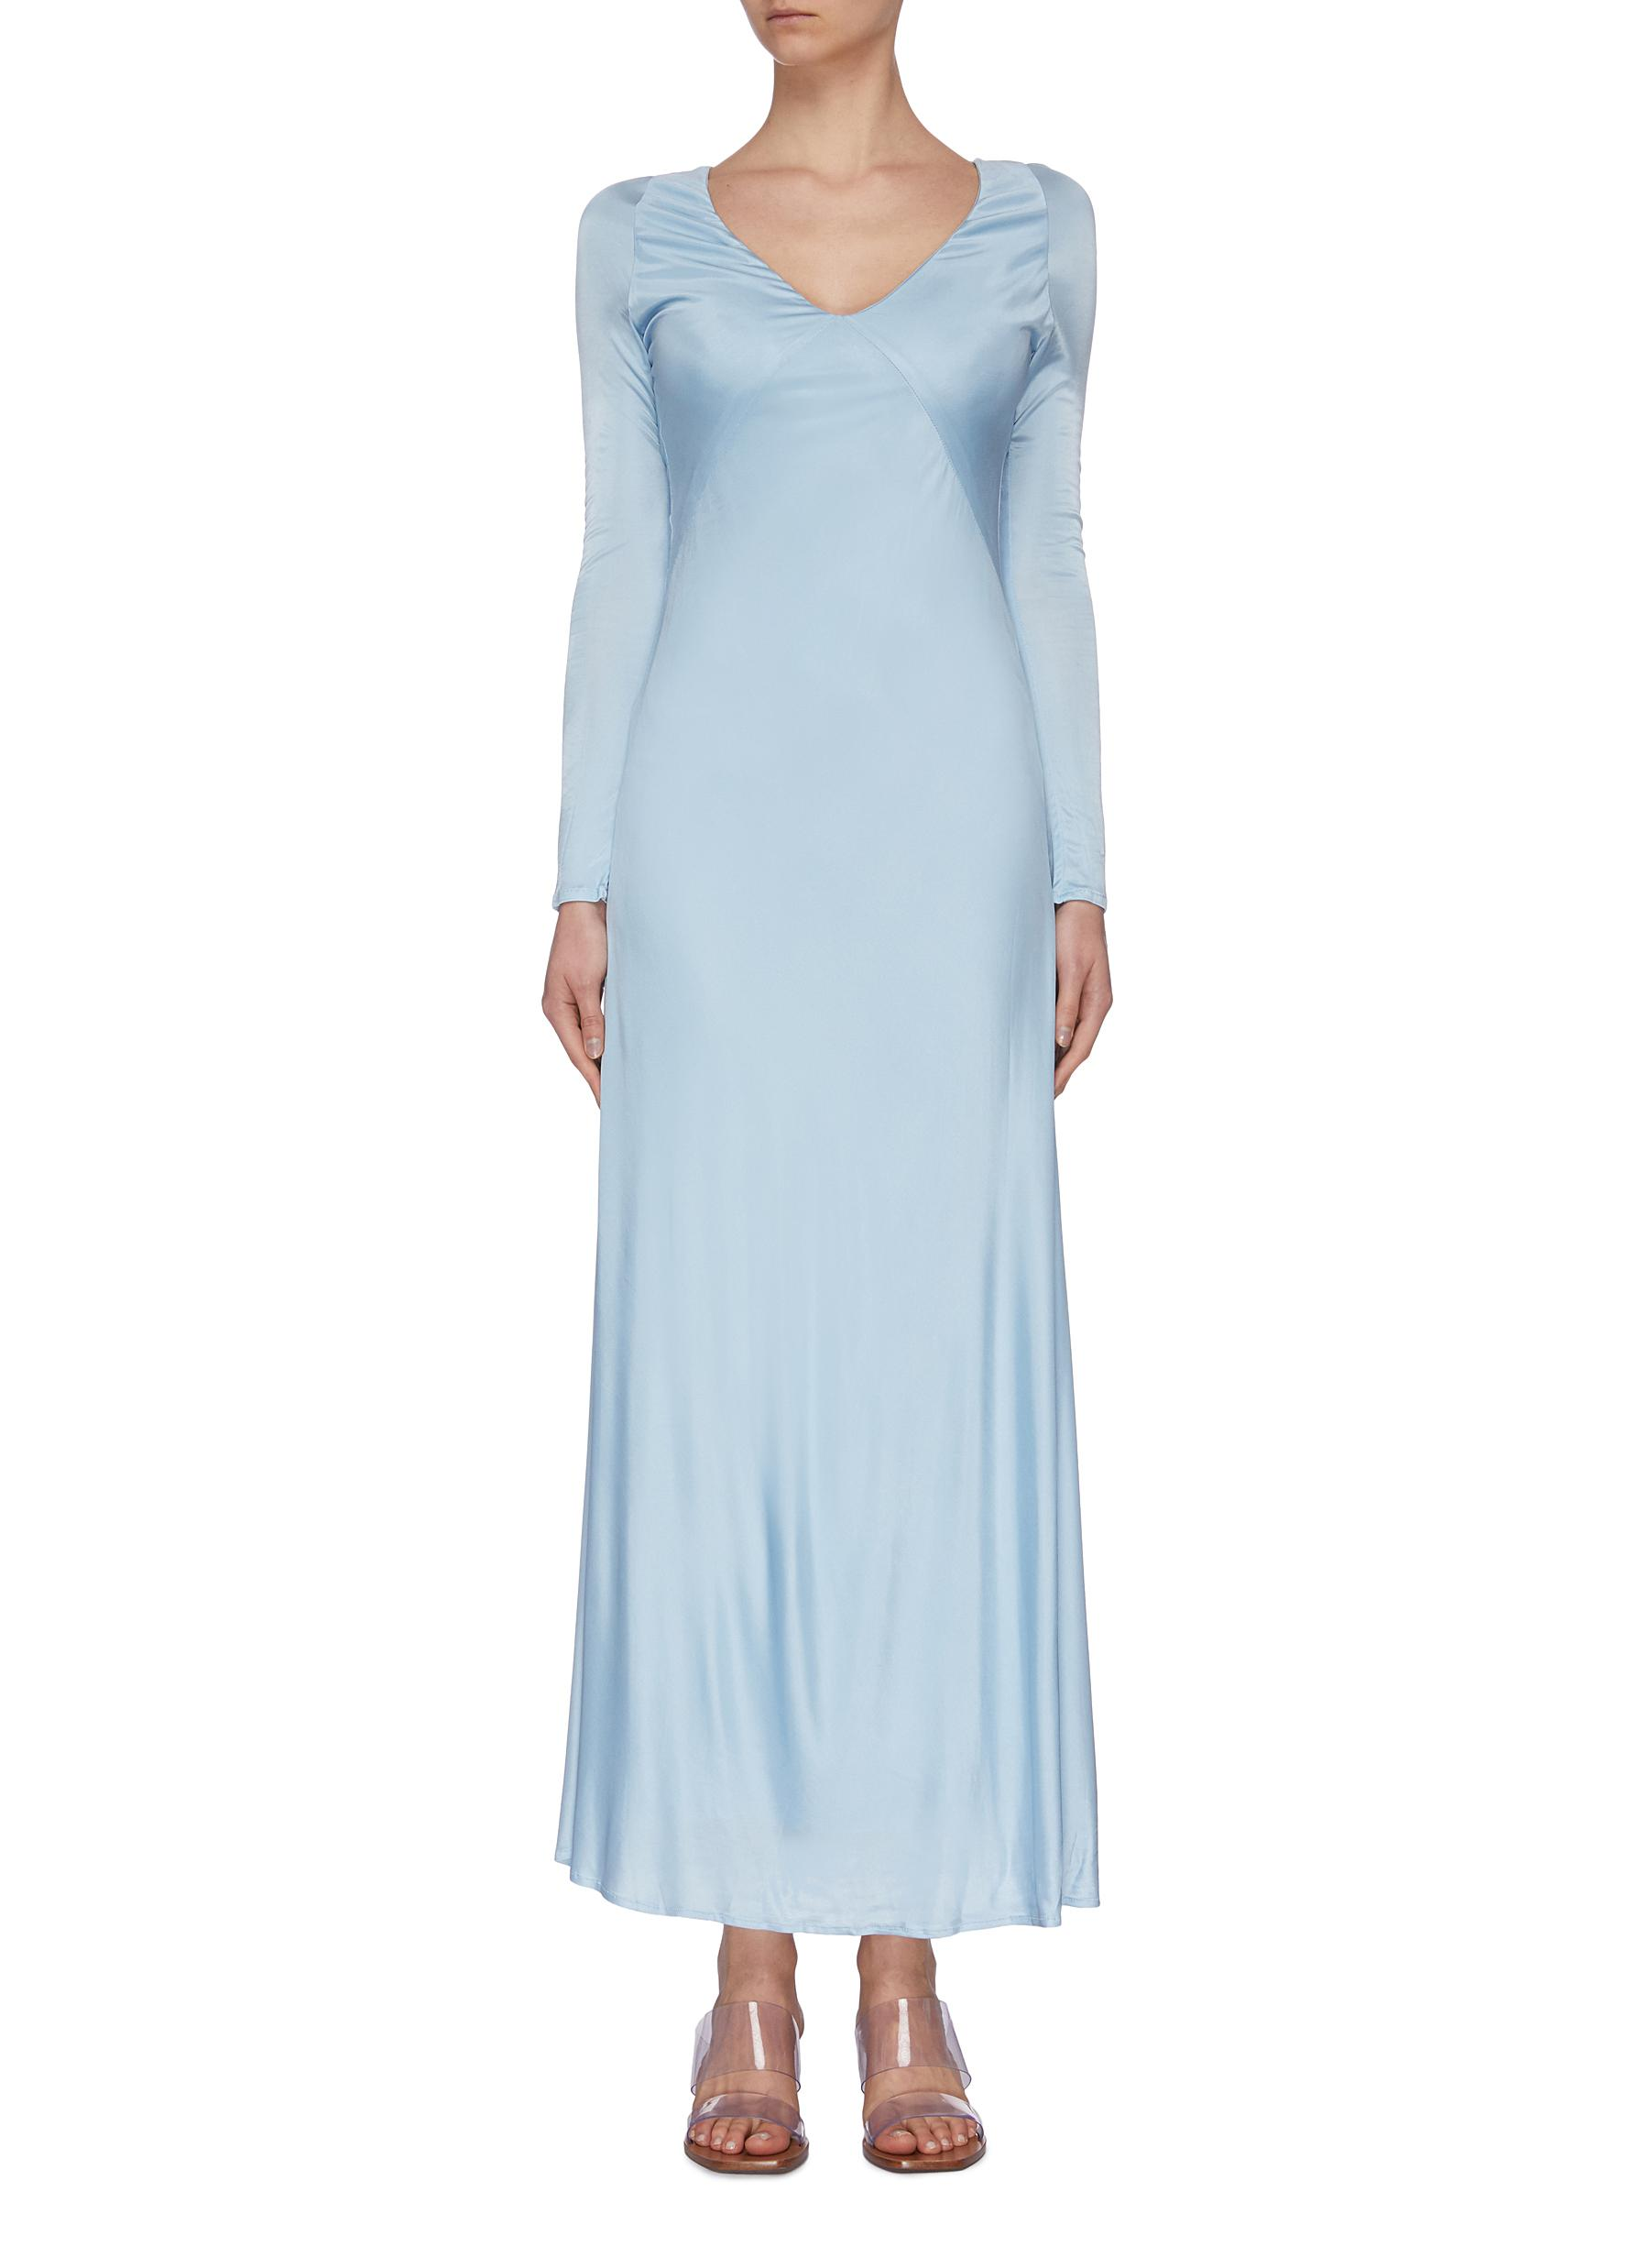 Buy Cult Gaia Dresses 'Becca' open back midi dress